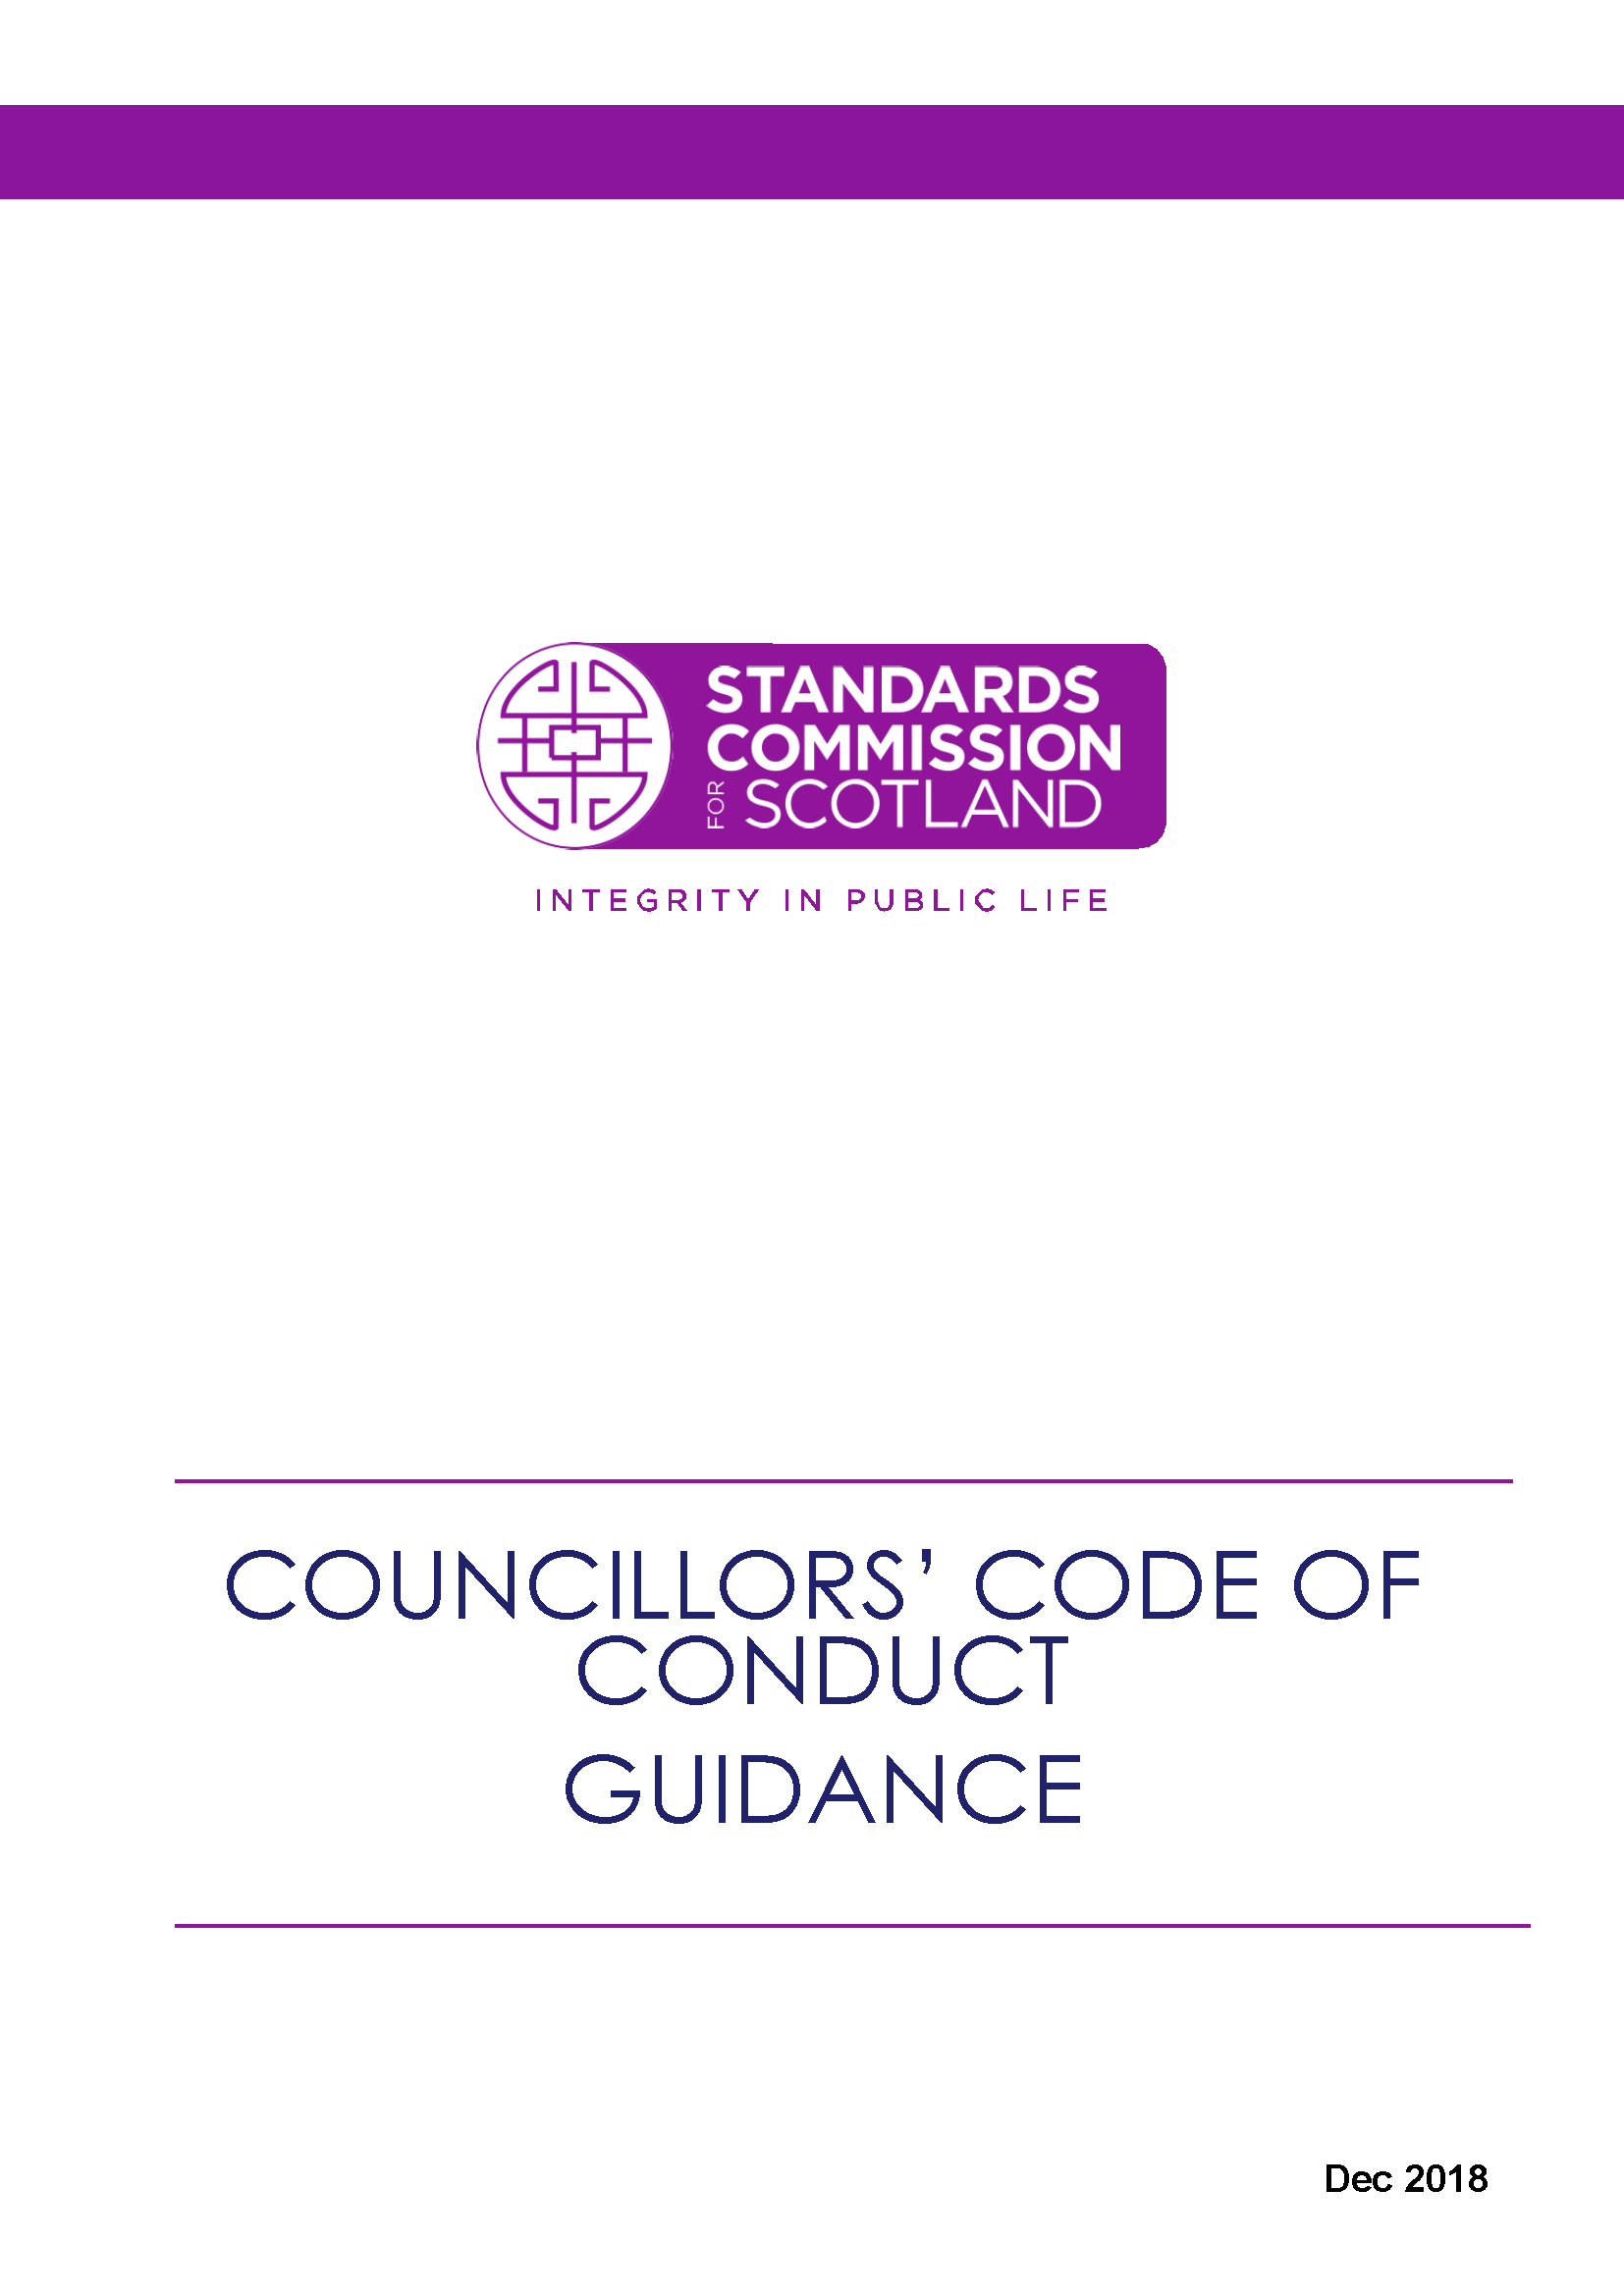 Councillors' Code of Conduct - Guidance only 2018